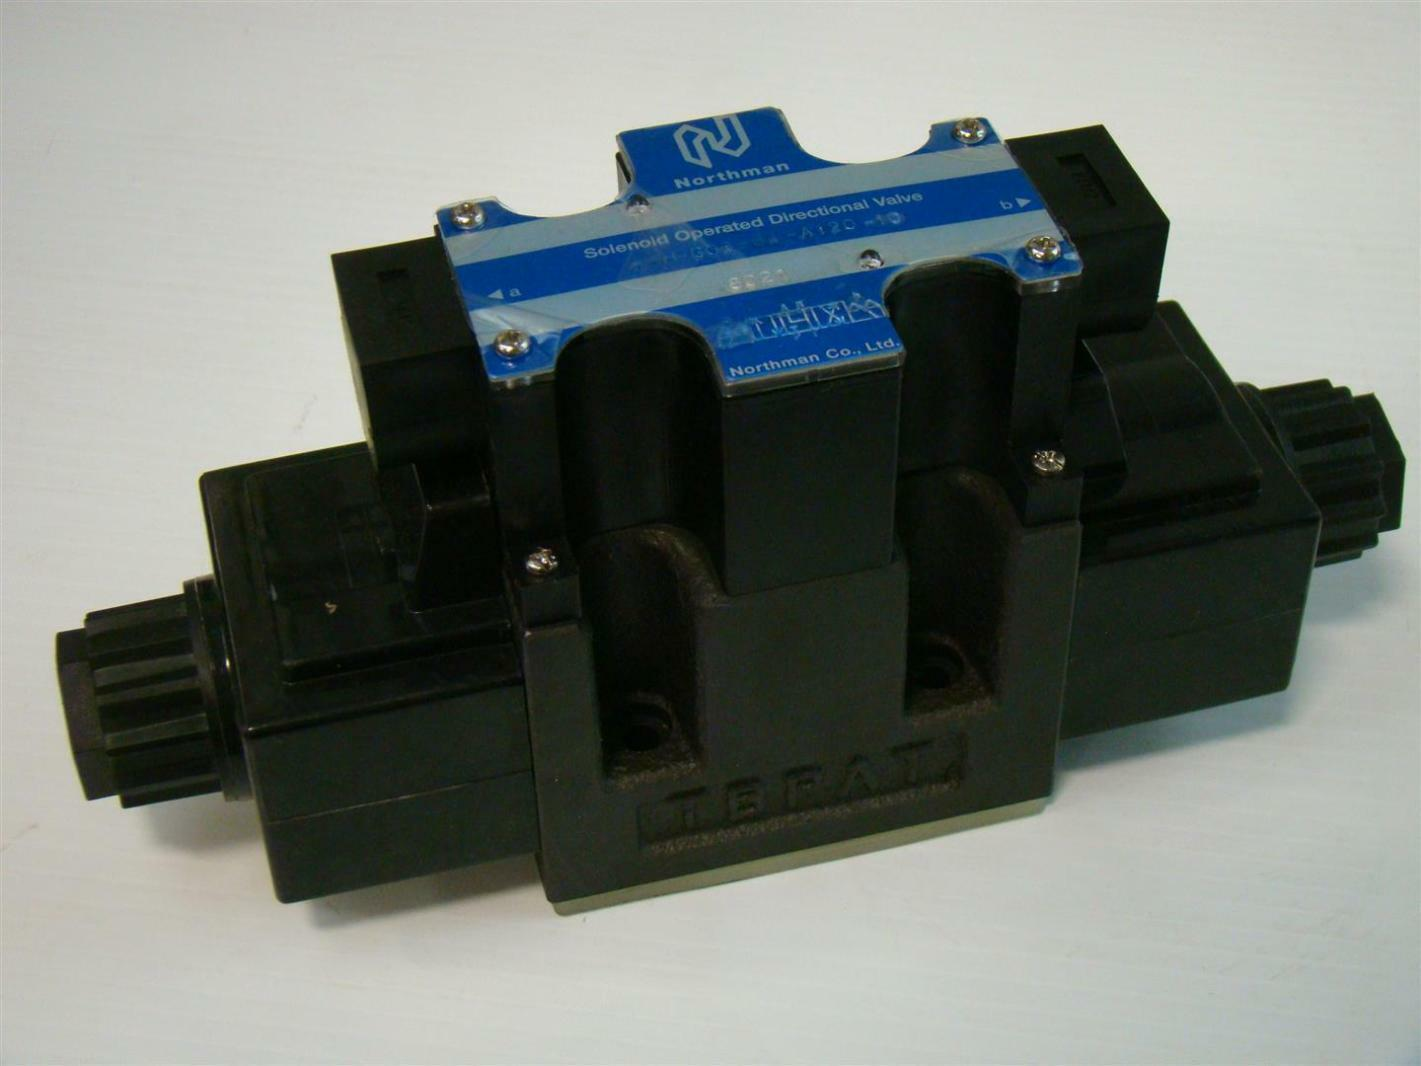 agw108 northman solenoid operated directional valve 8021 swh g03 c4 a120 10 northman solenoid operated directional valve 8021 swh g03 c4 a120 Solenoid Schematic Symbol at readyjetset.co